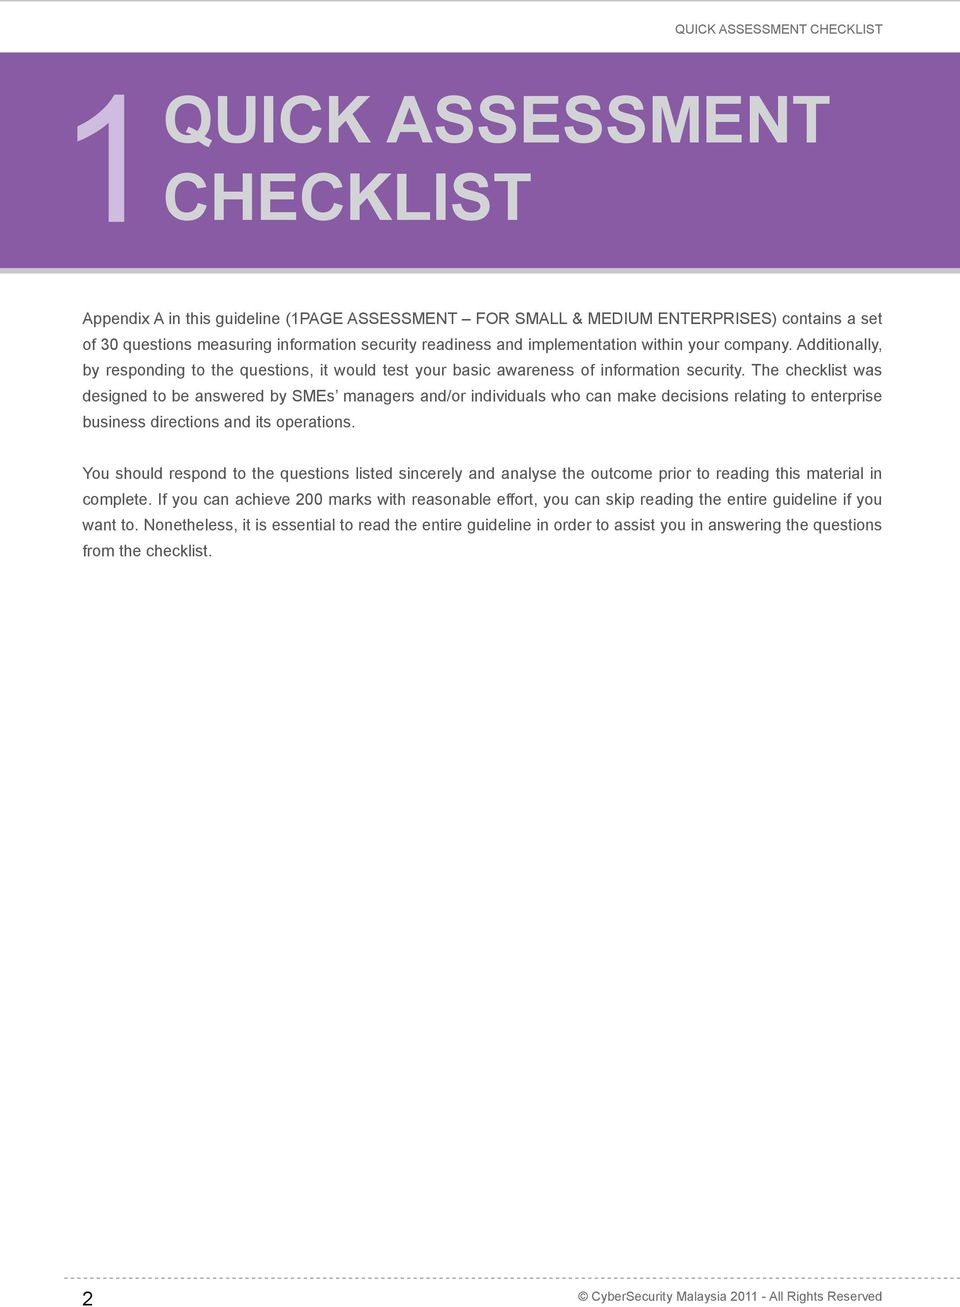 The checklist was designed to be answered by SMEs managers and/or individuals who can make decisions relating to enterprise business directions and its operations.